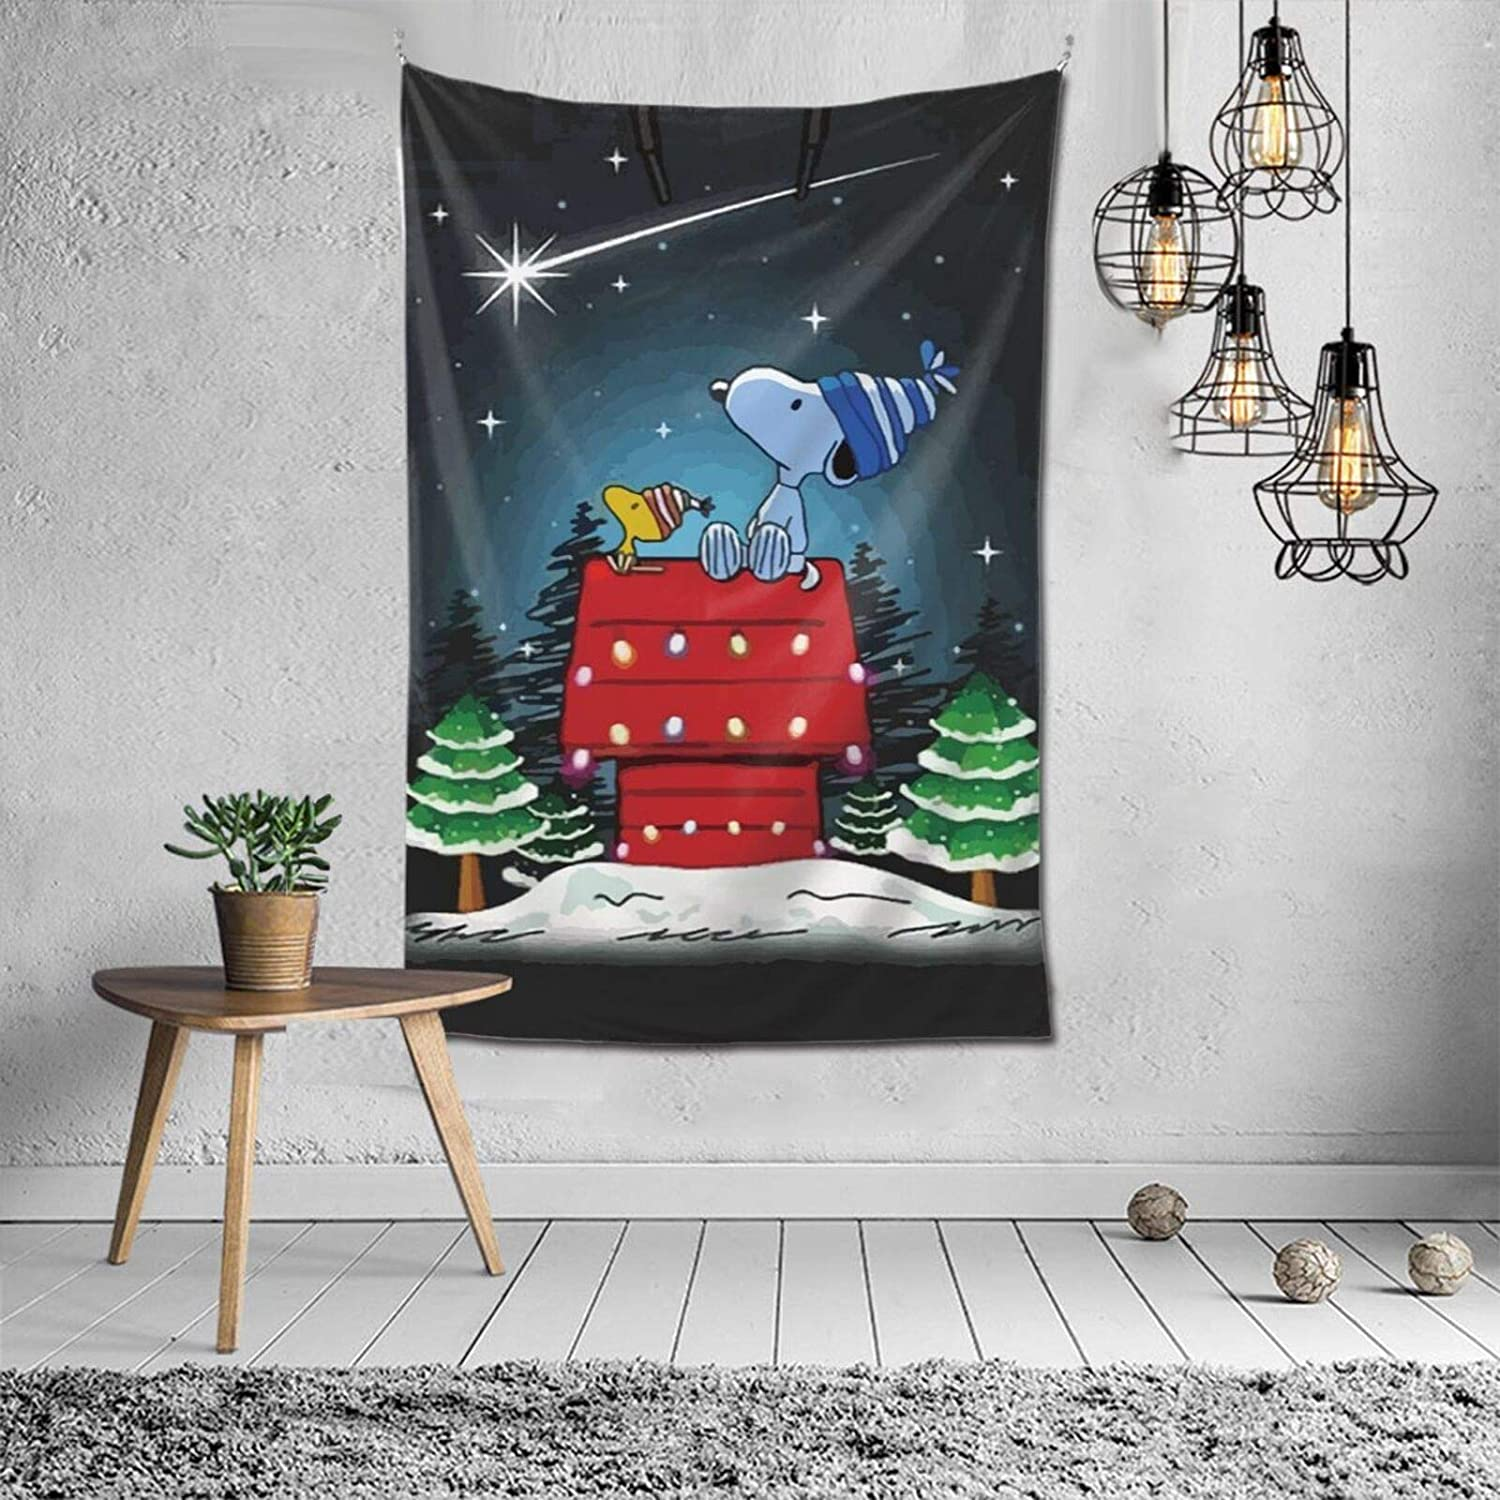 MPJTJGWZ 3D Print Cute Snoopy Tapestry Art Hanging Bedroom Living Room Dorm Wall Blankets Home Decor 60 x 40 in